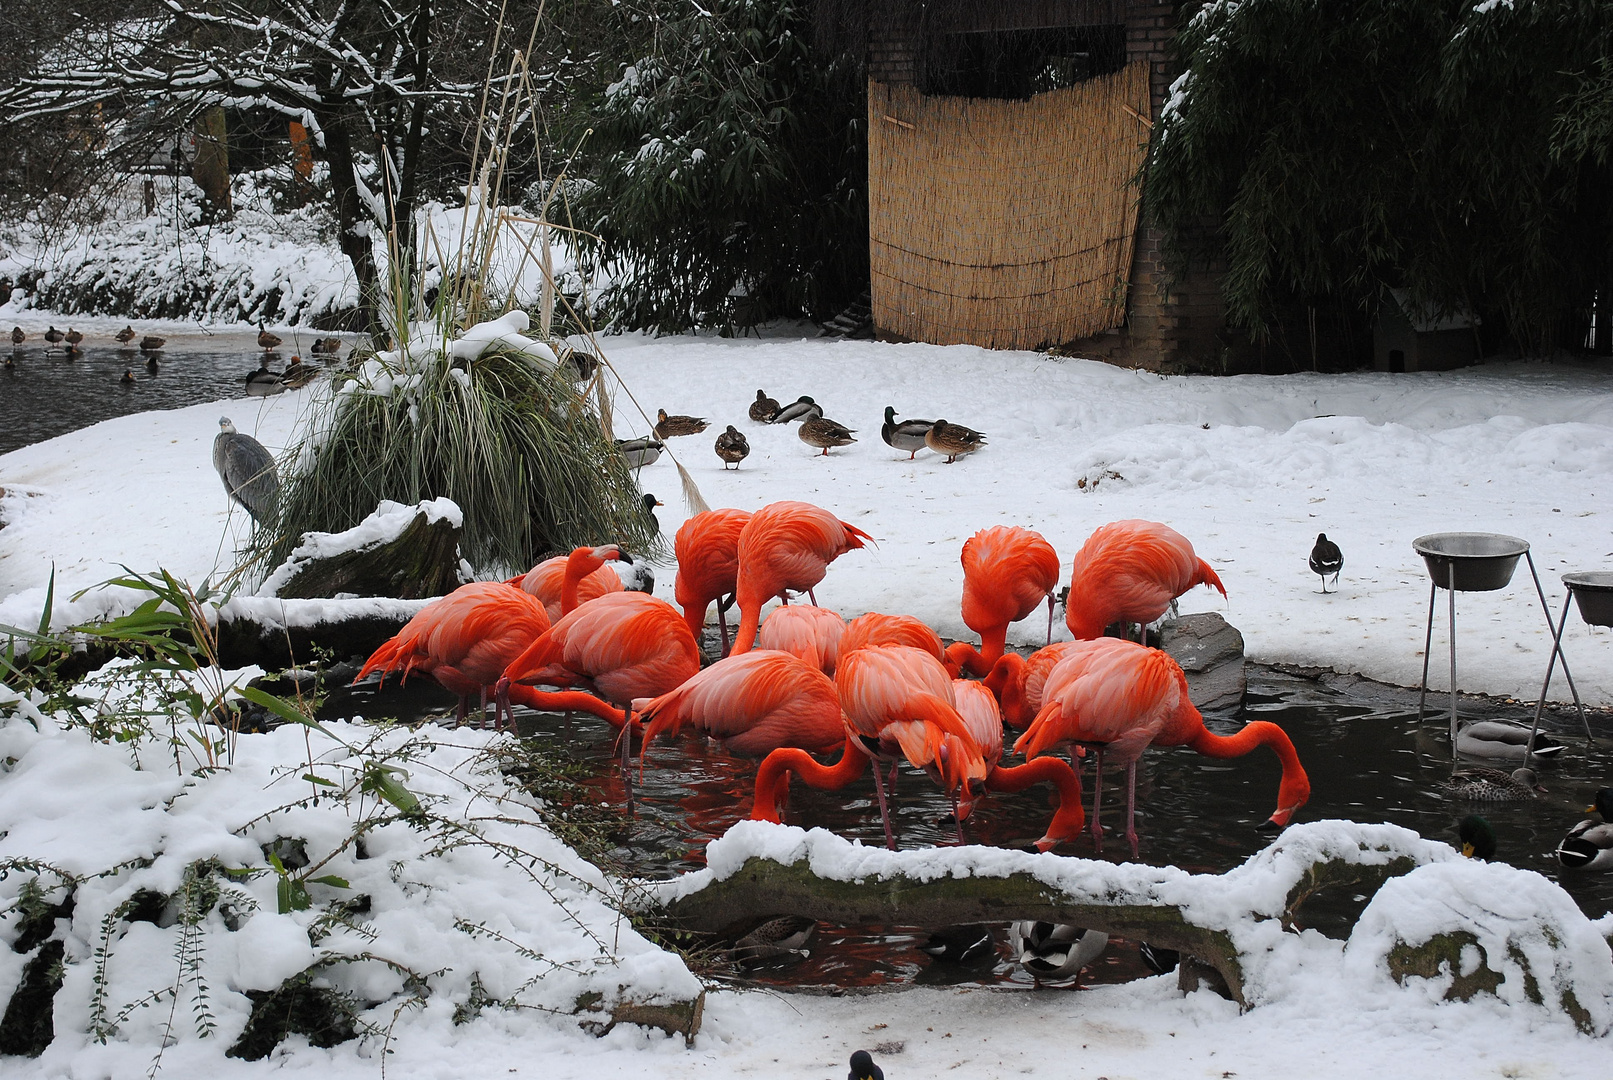 Winter im Zoo duisburg